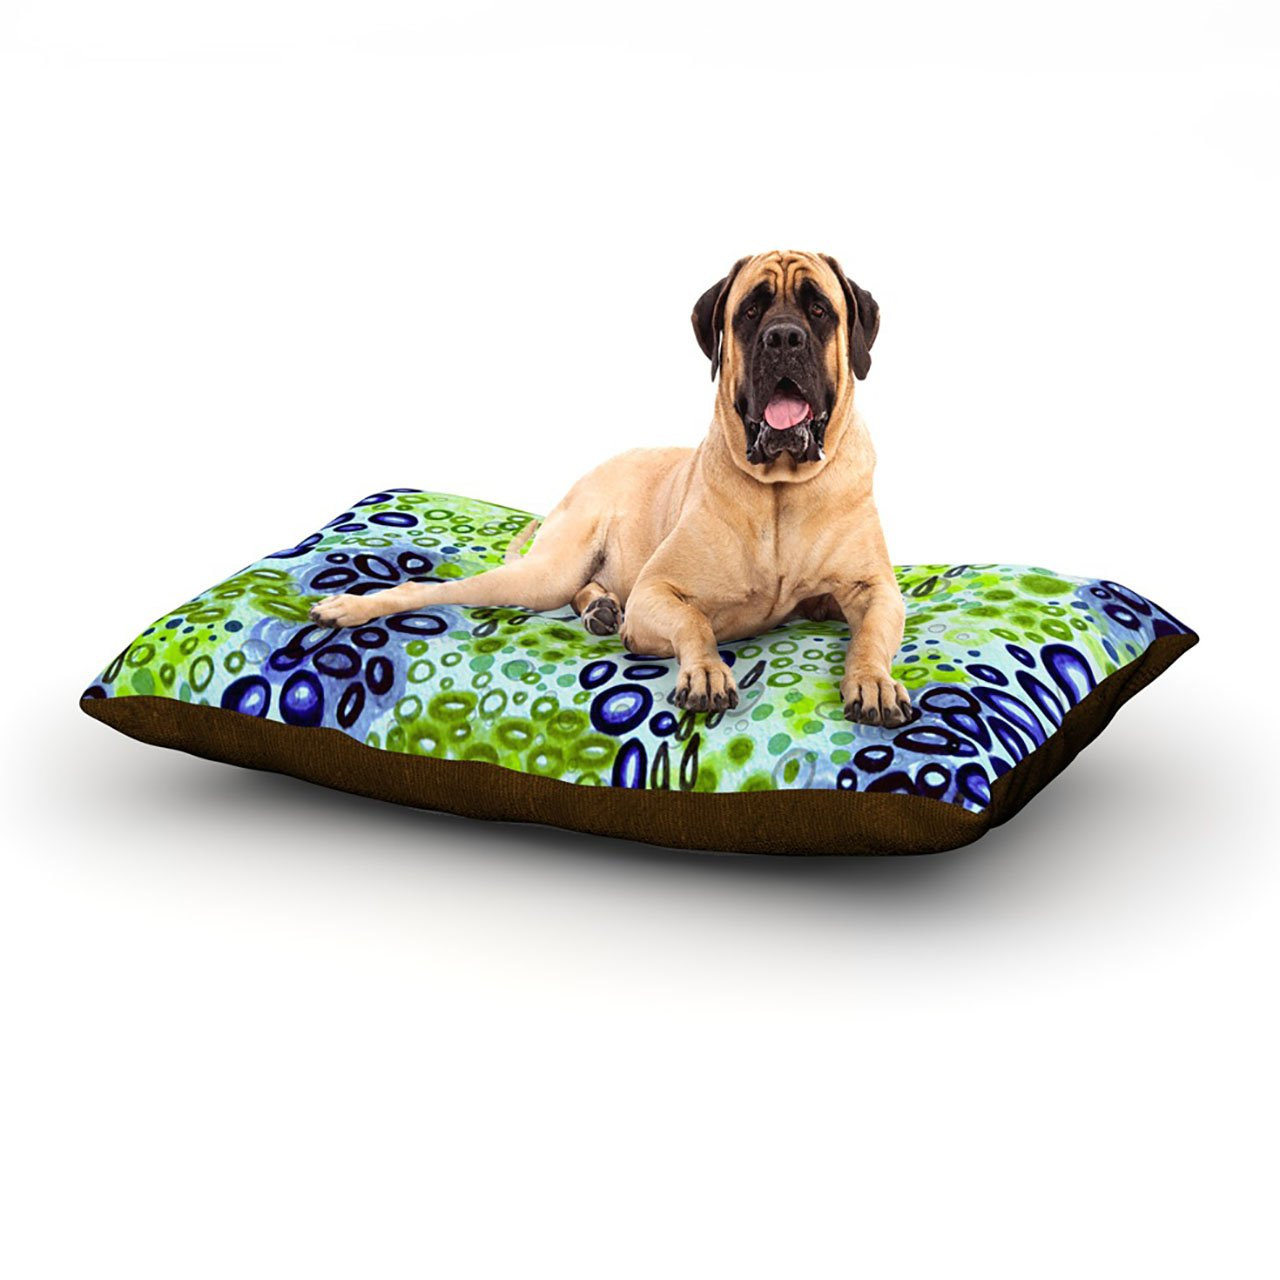 Circular Persuasion bluee Green X-Large 40\ Circular Persuasion bluee Green X-Large 40\ Kess InHouse Ebi Emporium Circular Persuasion bluee Green  Dog Bed, 50 by 60-Inch, Aqua Turquoise